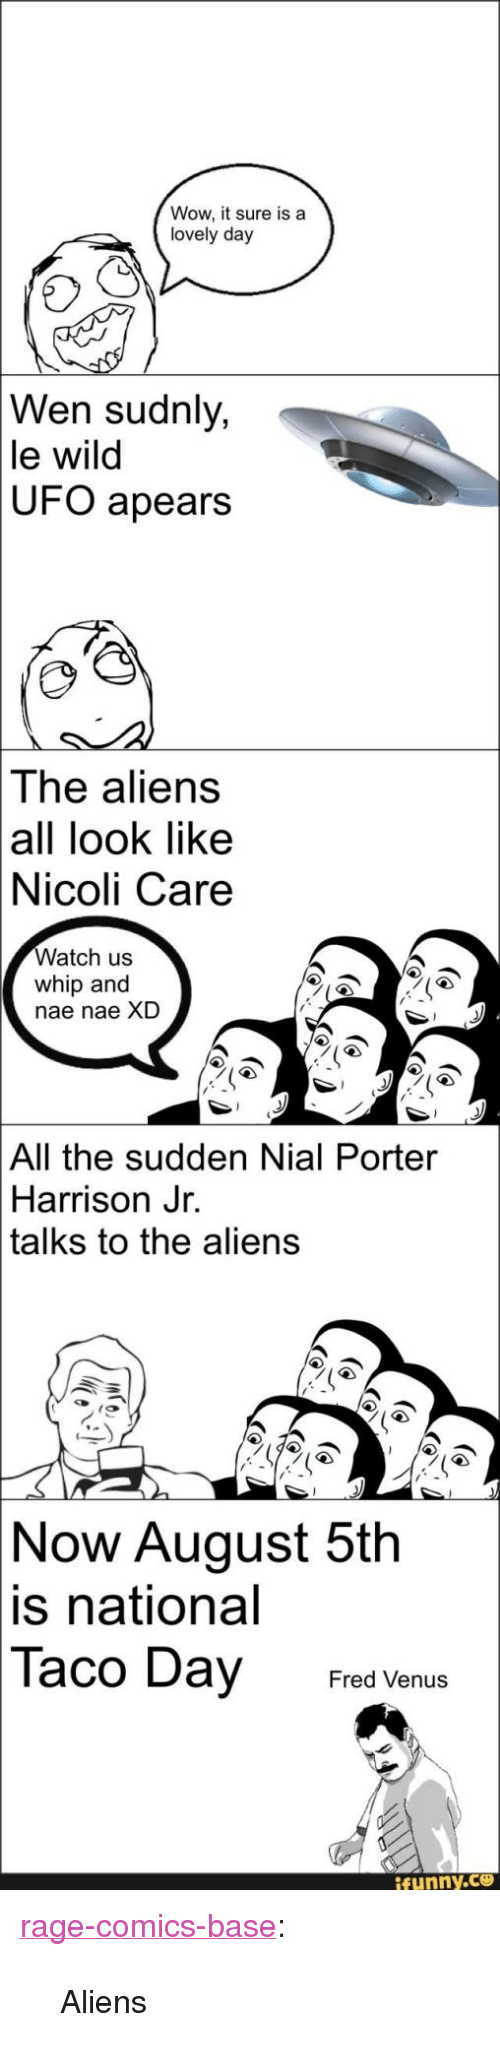 """nae nae: Wow, it sure is a  lovely day  Wen sudnly,  le wild  UFO  apears  The aliens  all look like  Nicoli Care  Watch us  whip and  nae nae XD  All the sudden Nial Porter  Harrison Jr.  talks to the aliens  Now  August 5th  is  national  Taco Day FredVe  ifunny.ce <p><a href=""""http://ragecomicsbase.com/post/161406231277/aliens"""" class=""""tumblr_blog"""">rage-comics-base</a>:</p>  <blockquote><p>Aliens</p></blockquote>"""